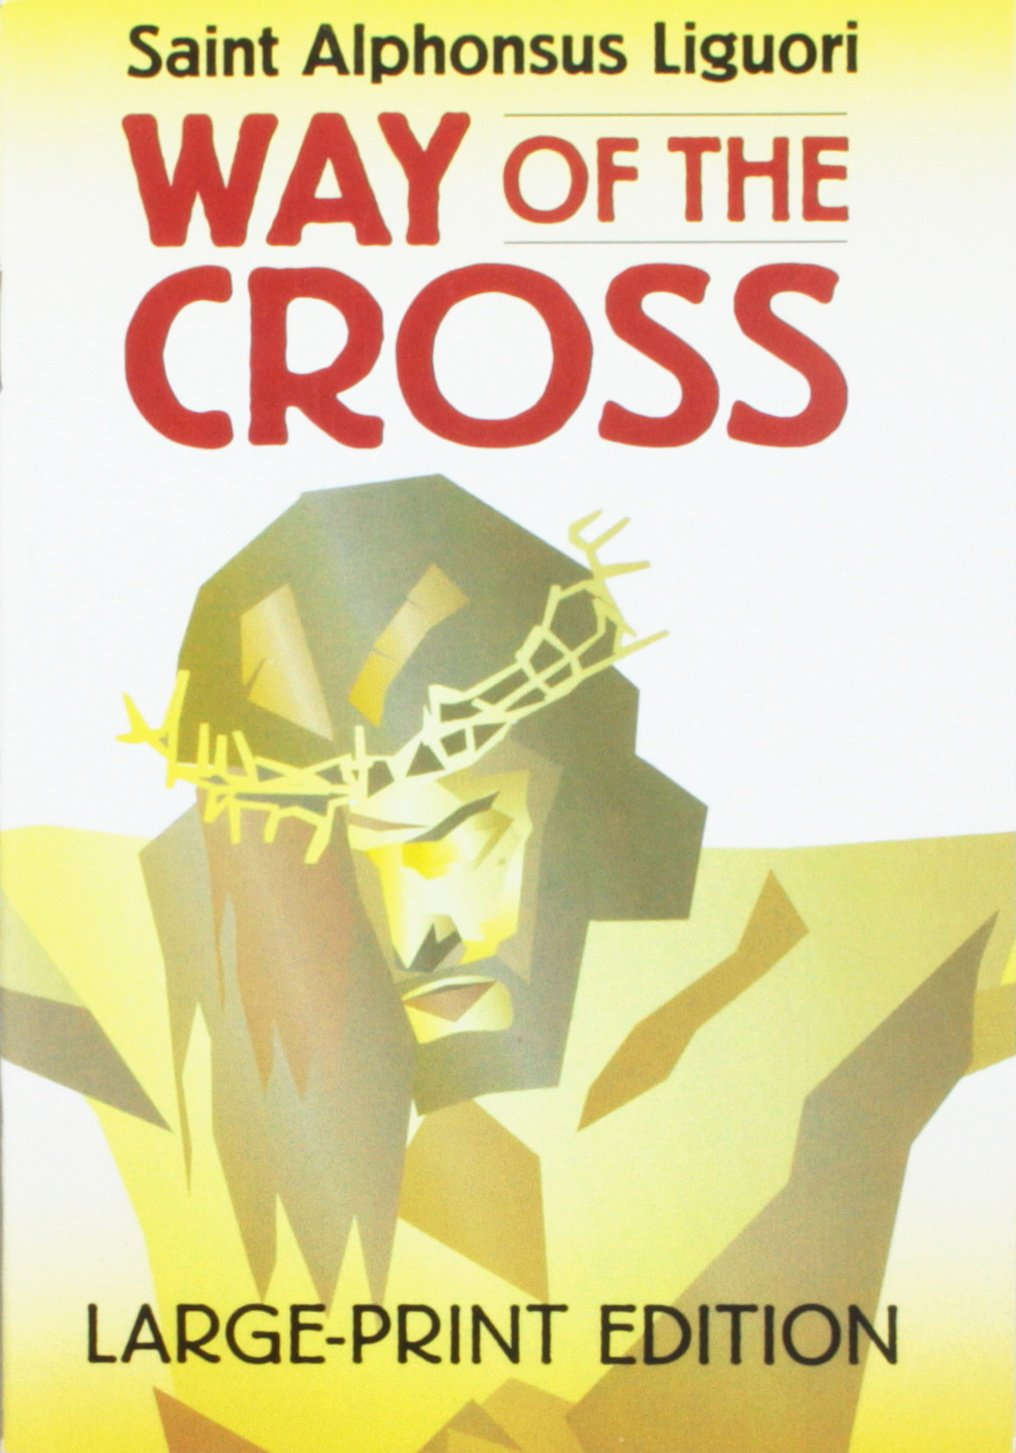 Way of the Cross: Large-Print Edition